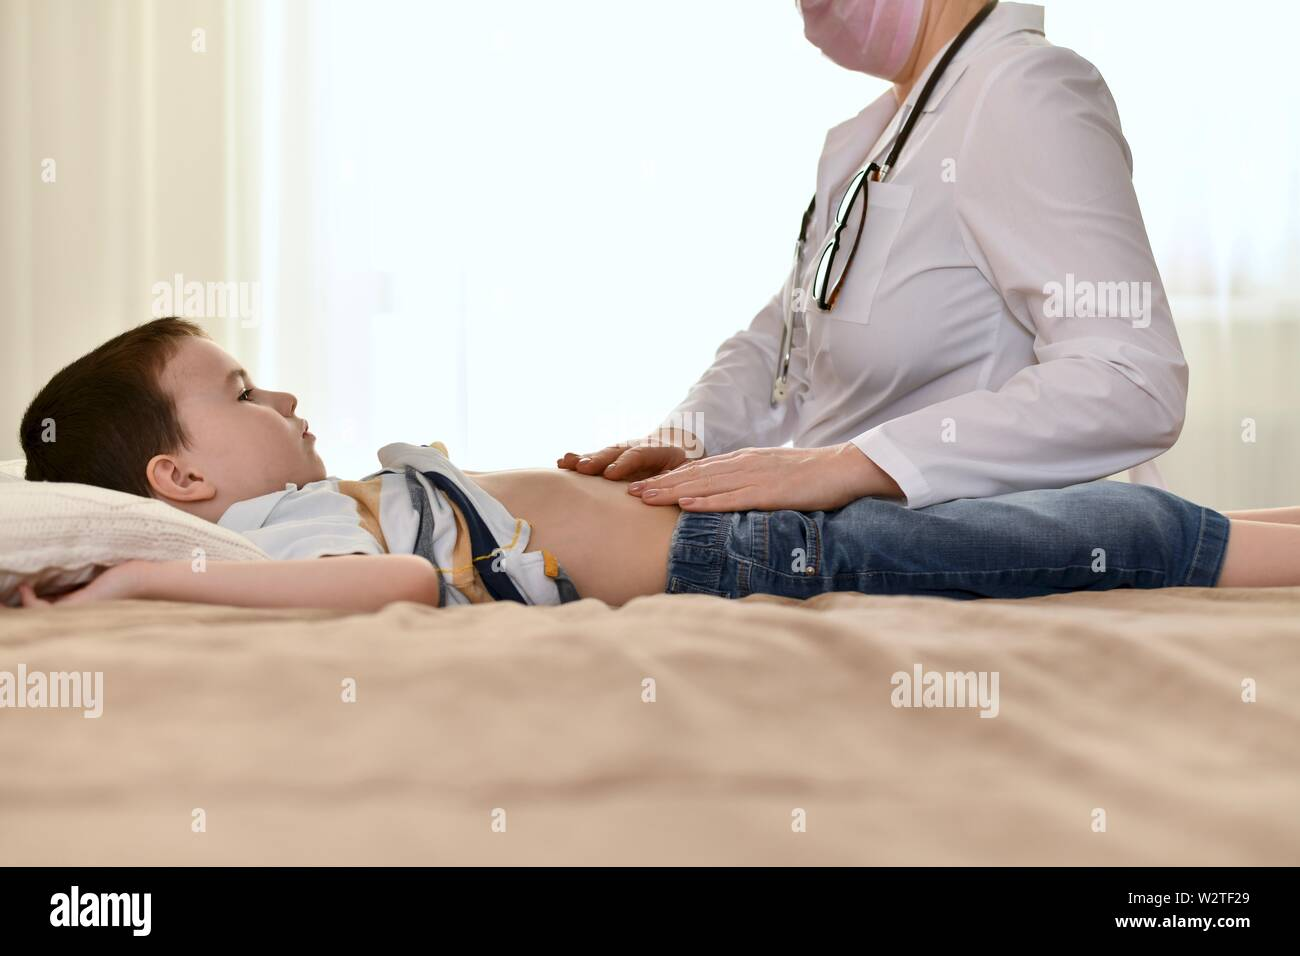 The doctor examines the belly of a sick child at home. A boy with a sad, serious face is lying on the bed and looking at the stethoscope on her neck. Stock Photo